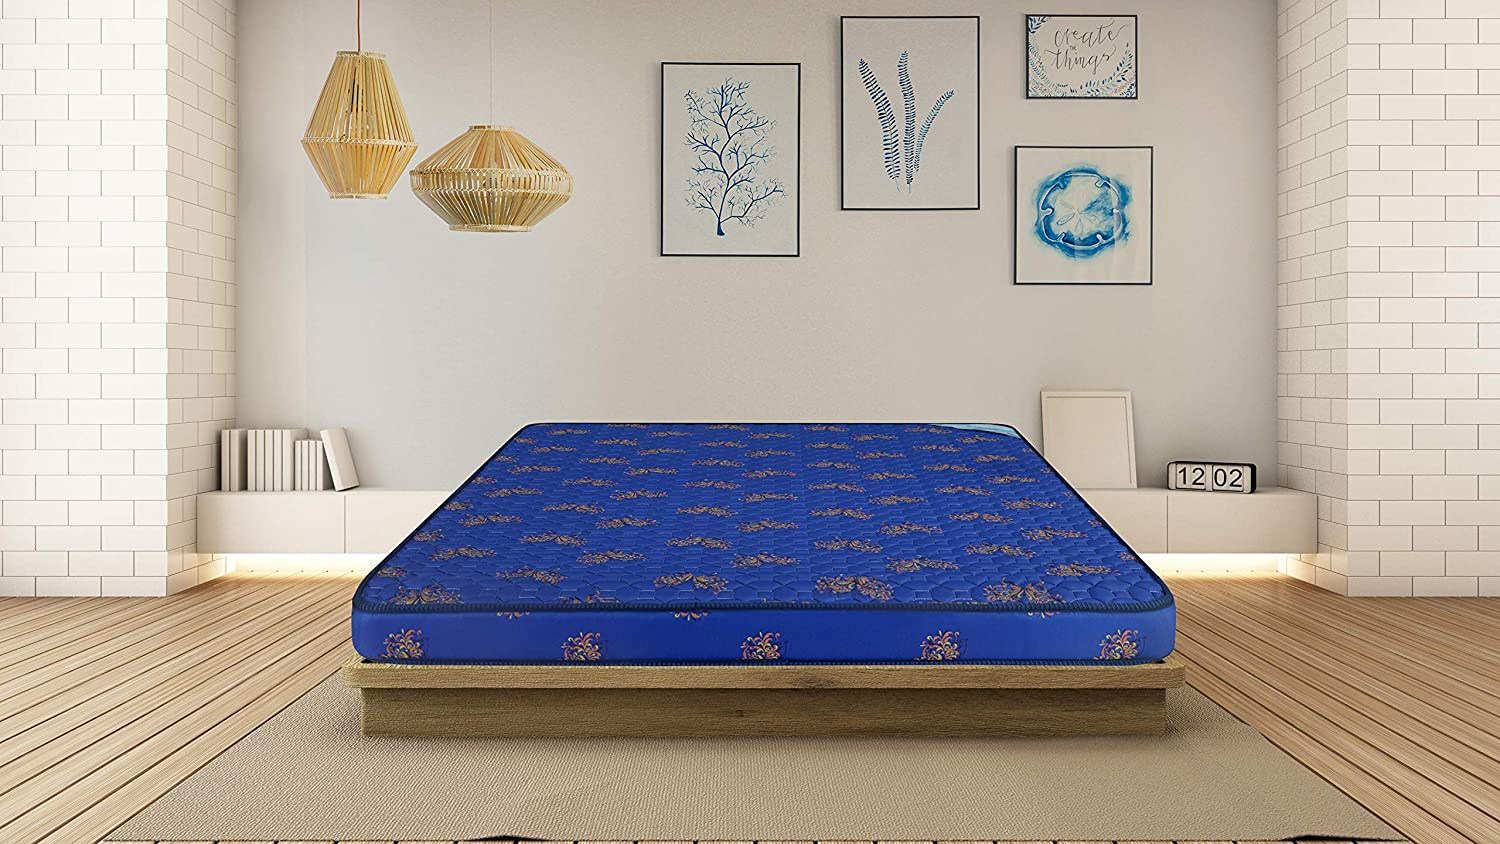 Nilkamal Floatel 4-inch King Size Foam Mattress (Blue, 78x72x4 inch)